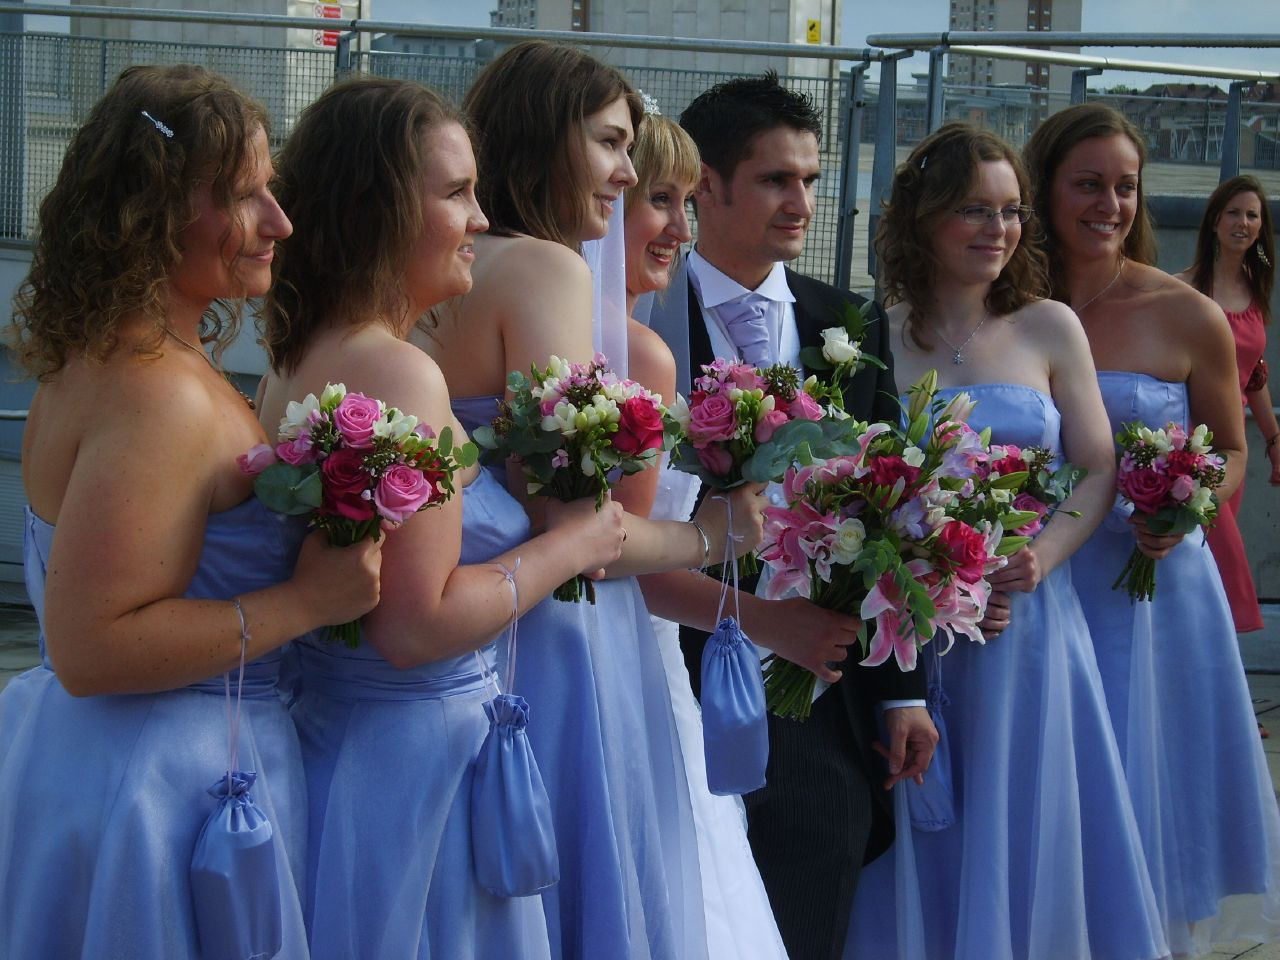 How to choose bridesmaids dress full guide weddings spirit how to choose bridesmaids dress full guide1 ombrellifo Images